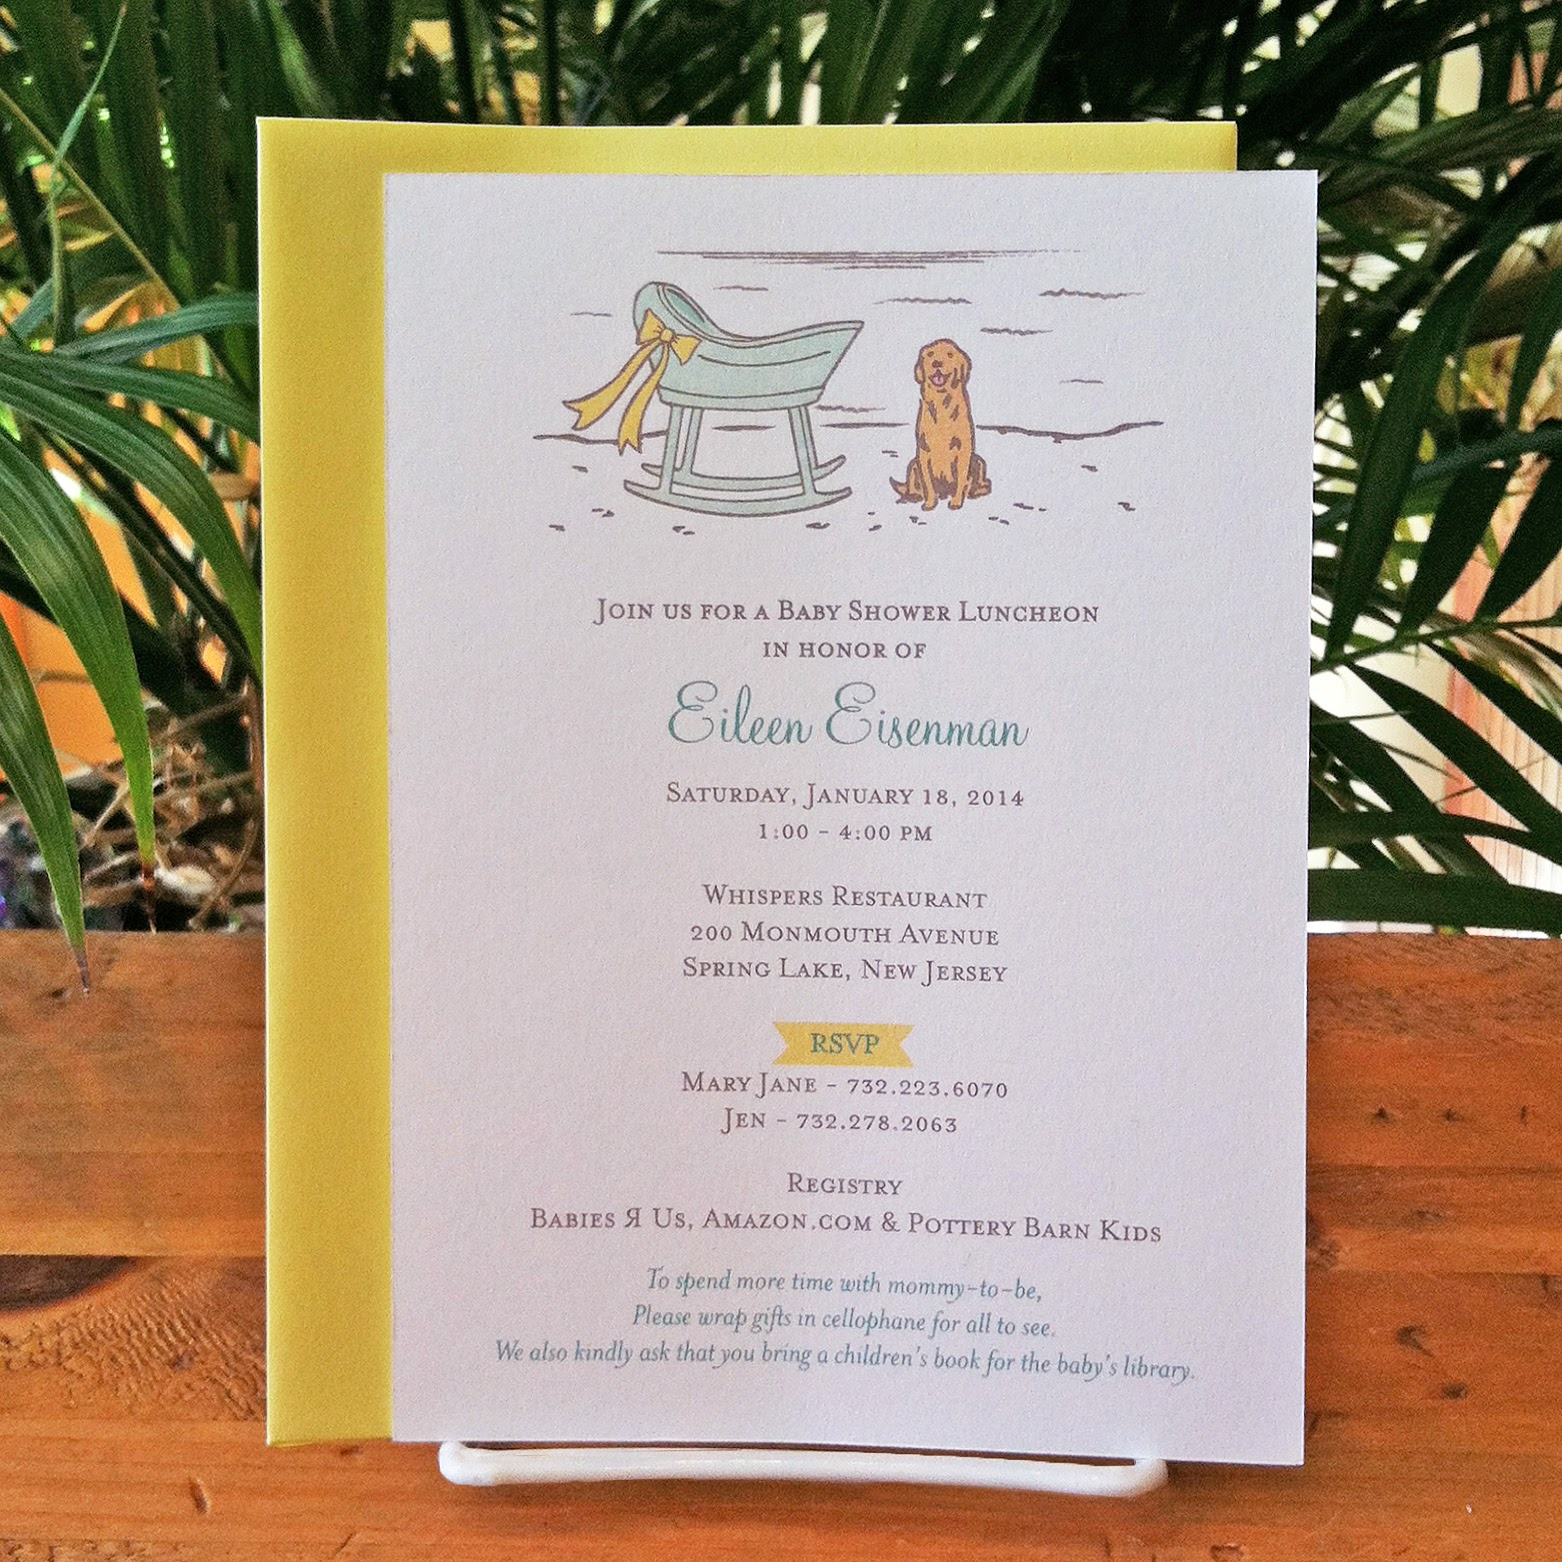 Invitations, Ink, Social Design Studio: Golden Retriever Baby Shower